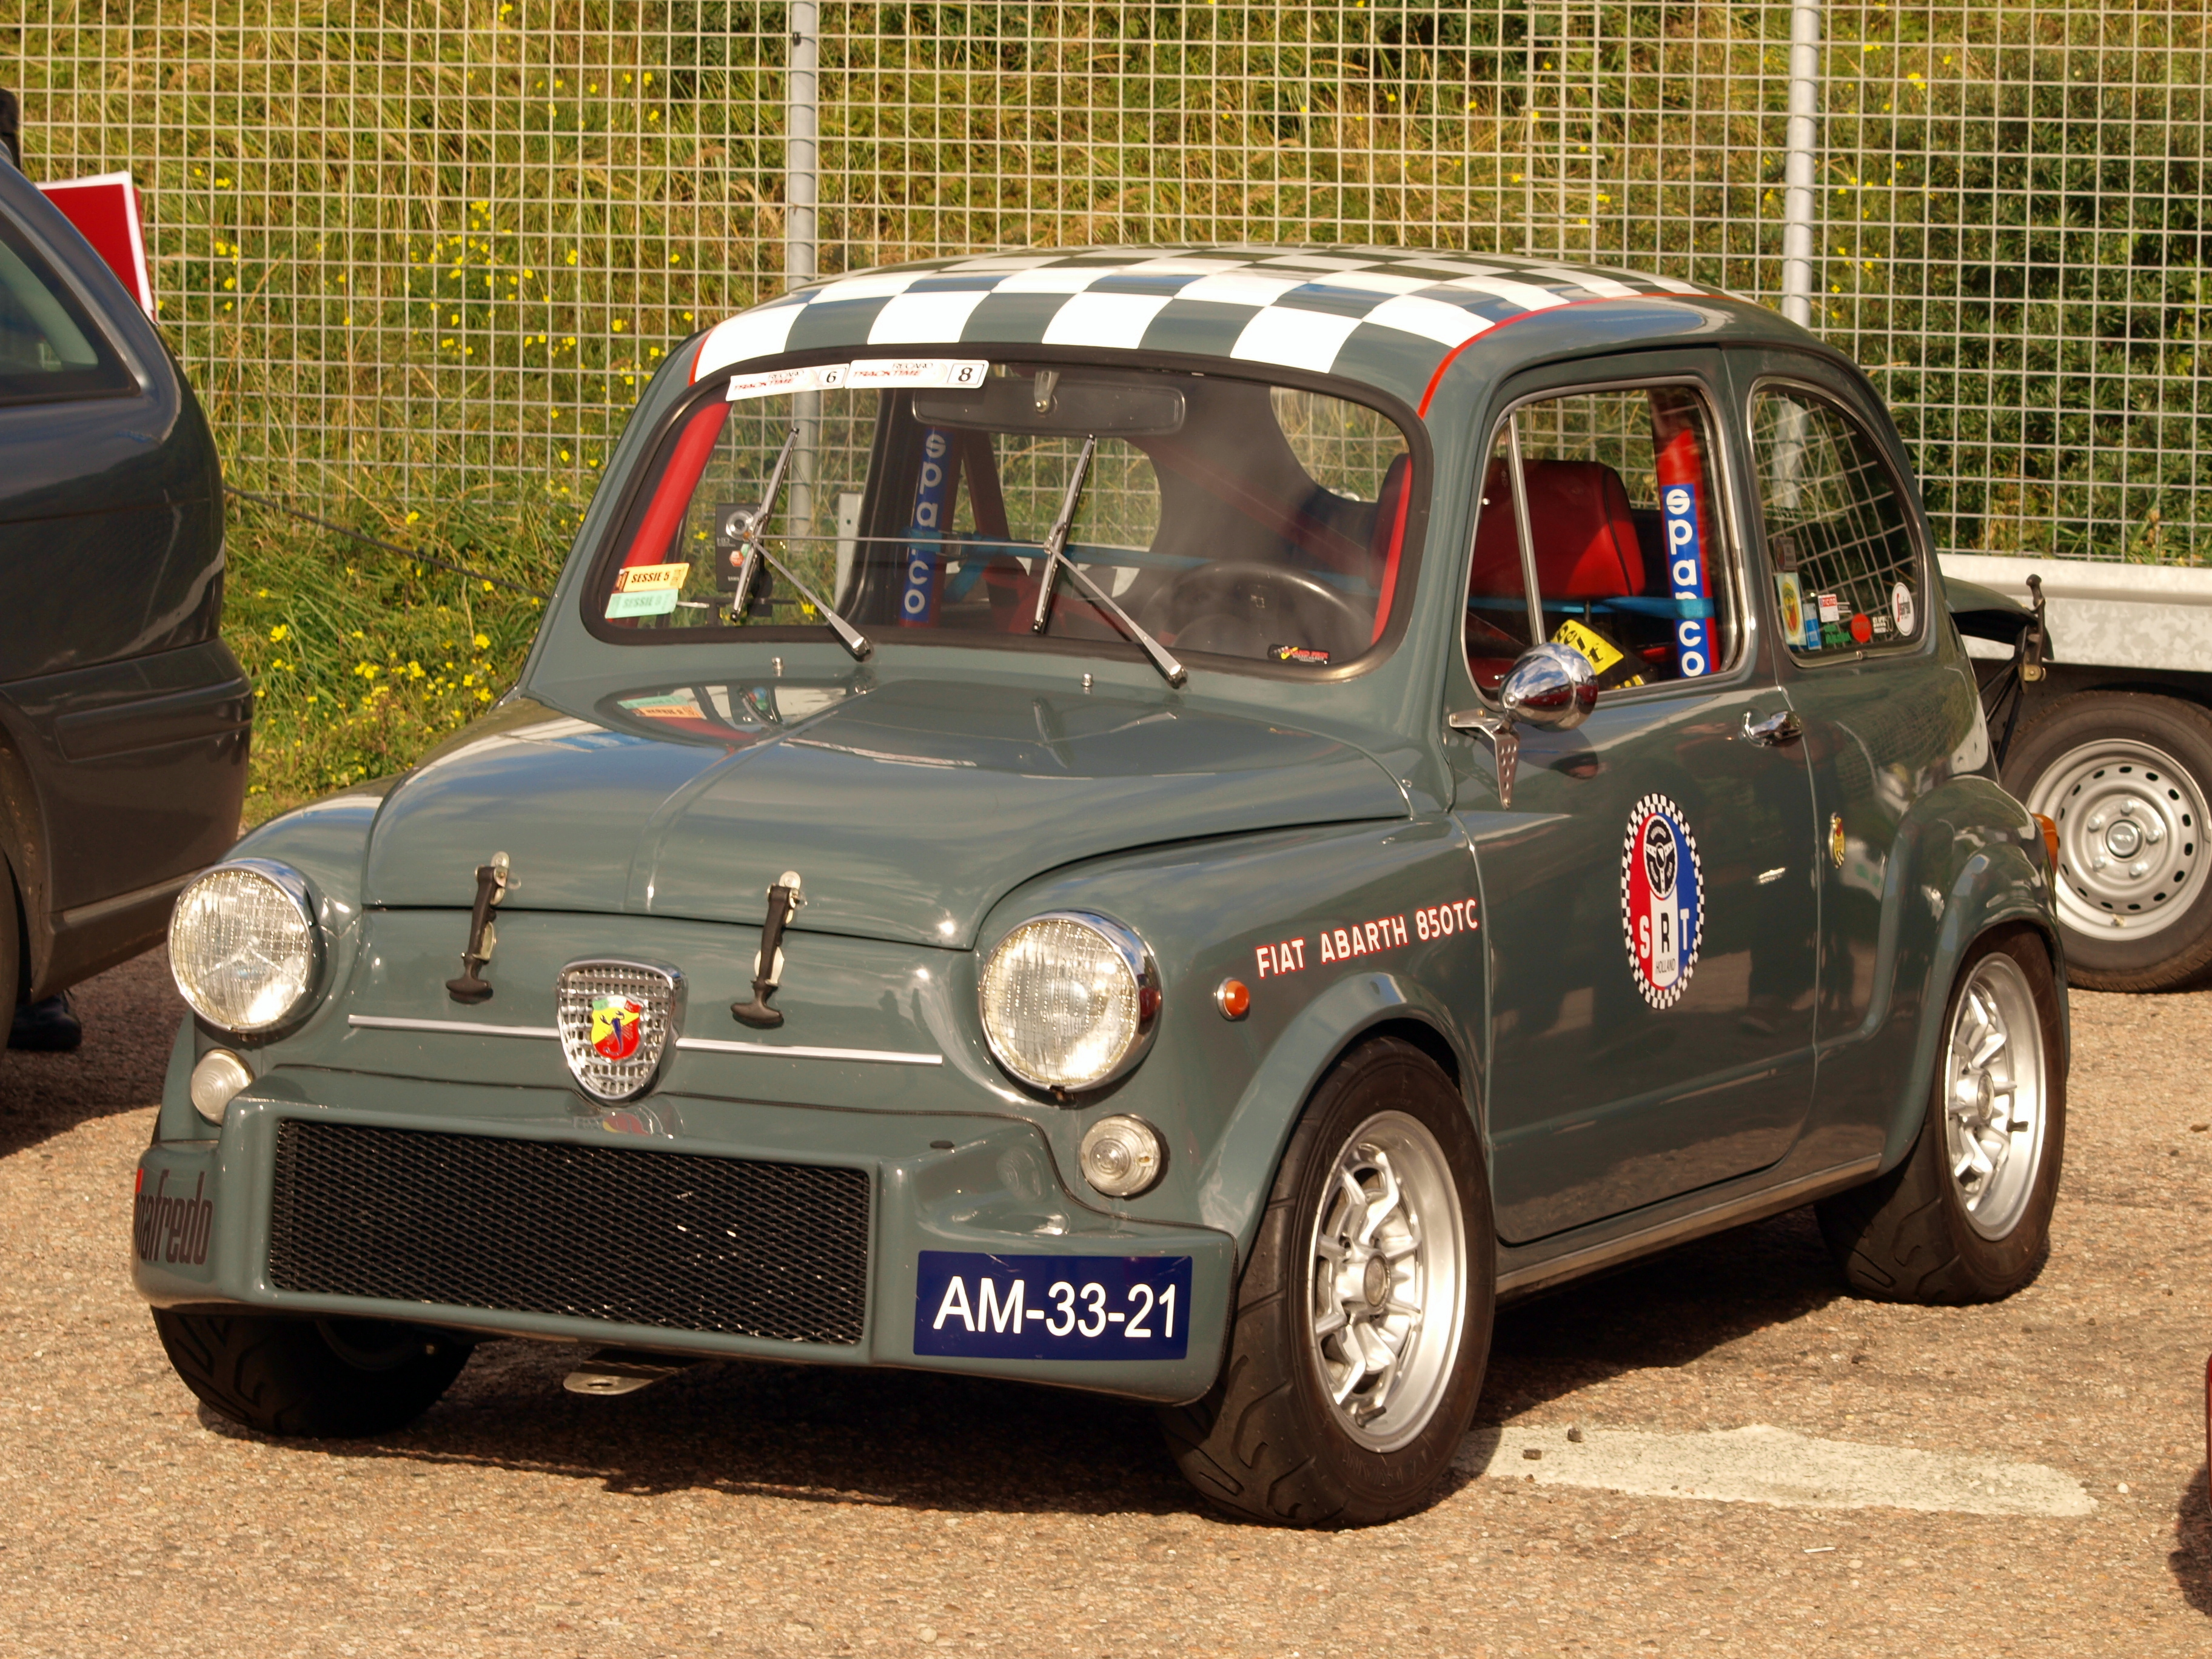 fiat end whom generation part old to front sale second with postwar and a of examp begat serendipity who influence pre coincidence cars for italian some so examples its studebaker similar prow like blog american nice